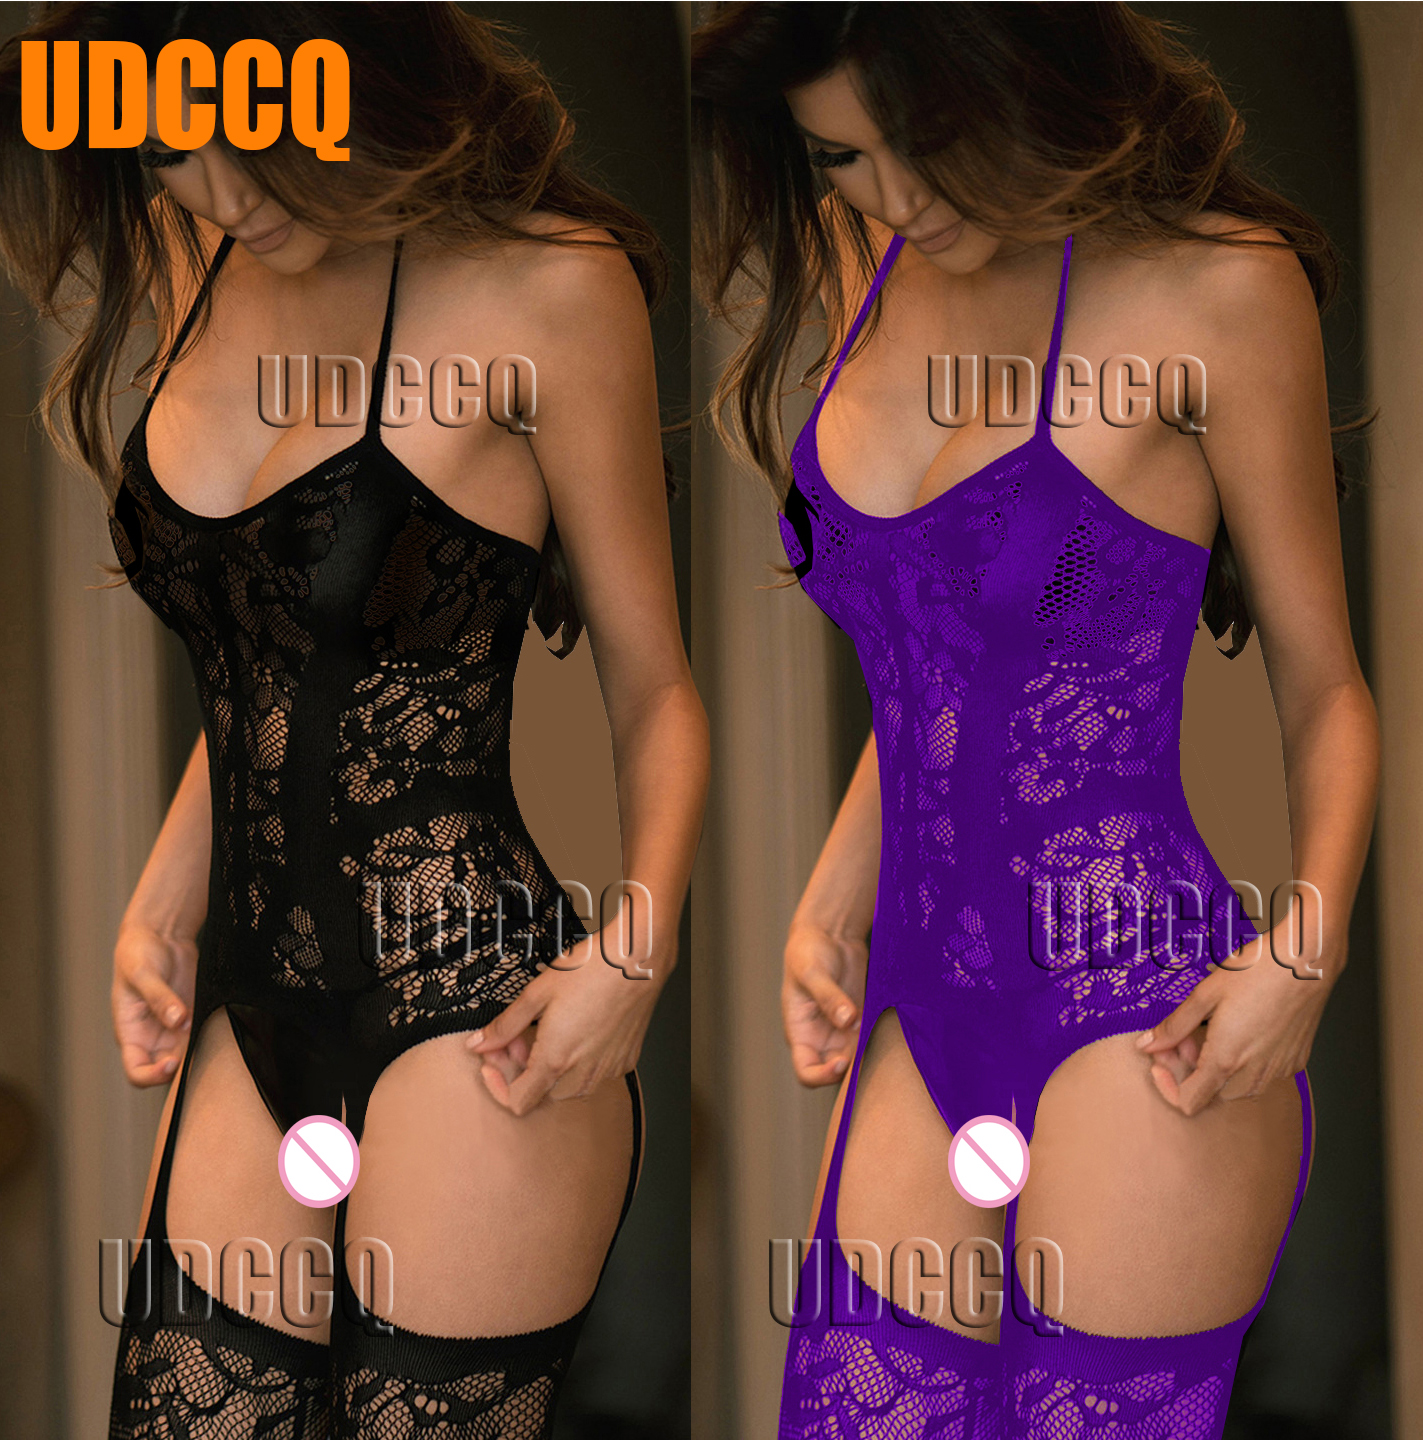 <font><b>Sexy</b></font> FishNet <font><b>Lingerie</b></font> Babydoll baby doll dress wedding night Underwear <font><b>intimates</b></font> Chemises Body stocking costumes Negligees 9911 image